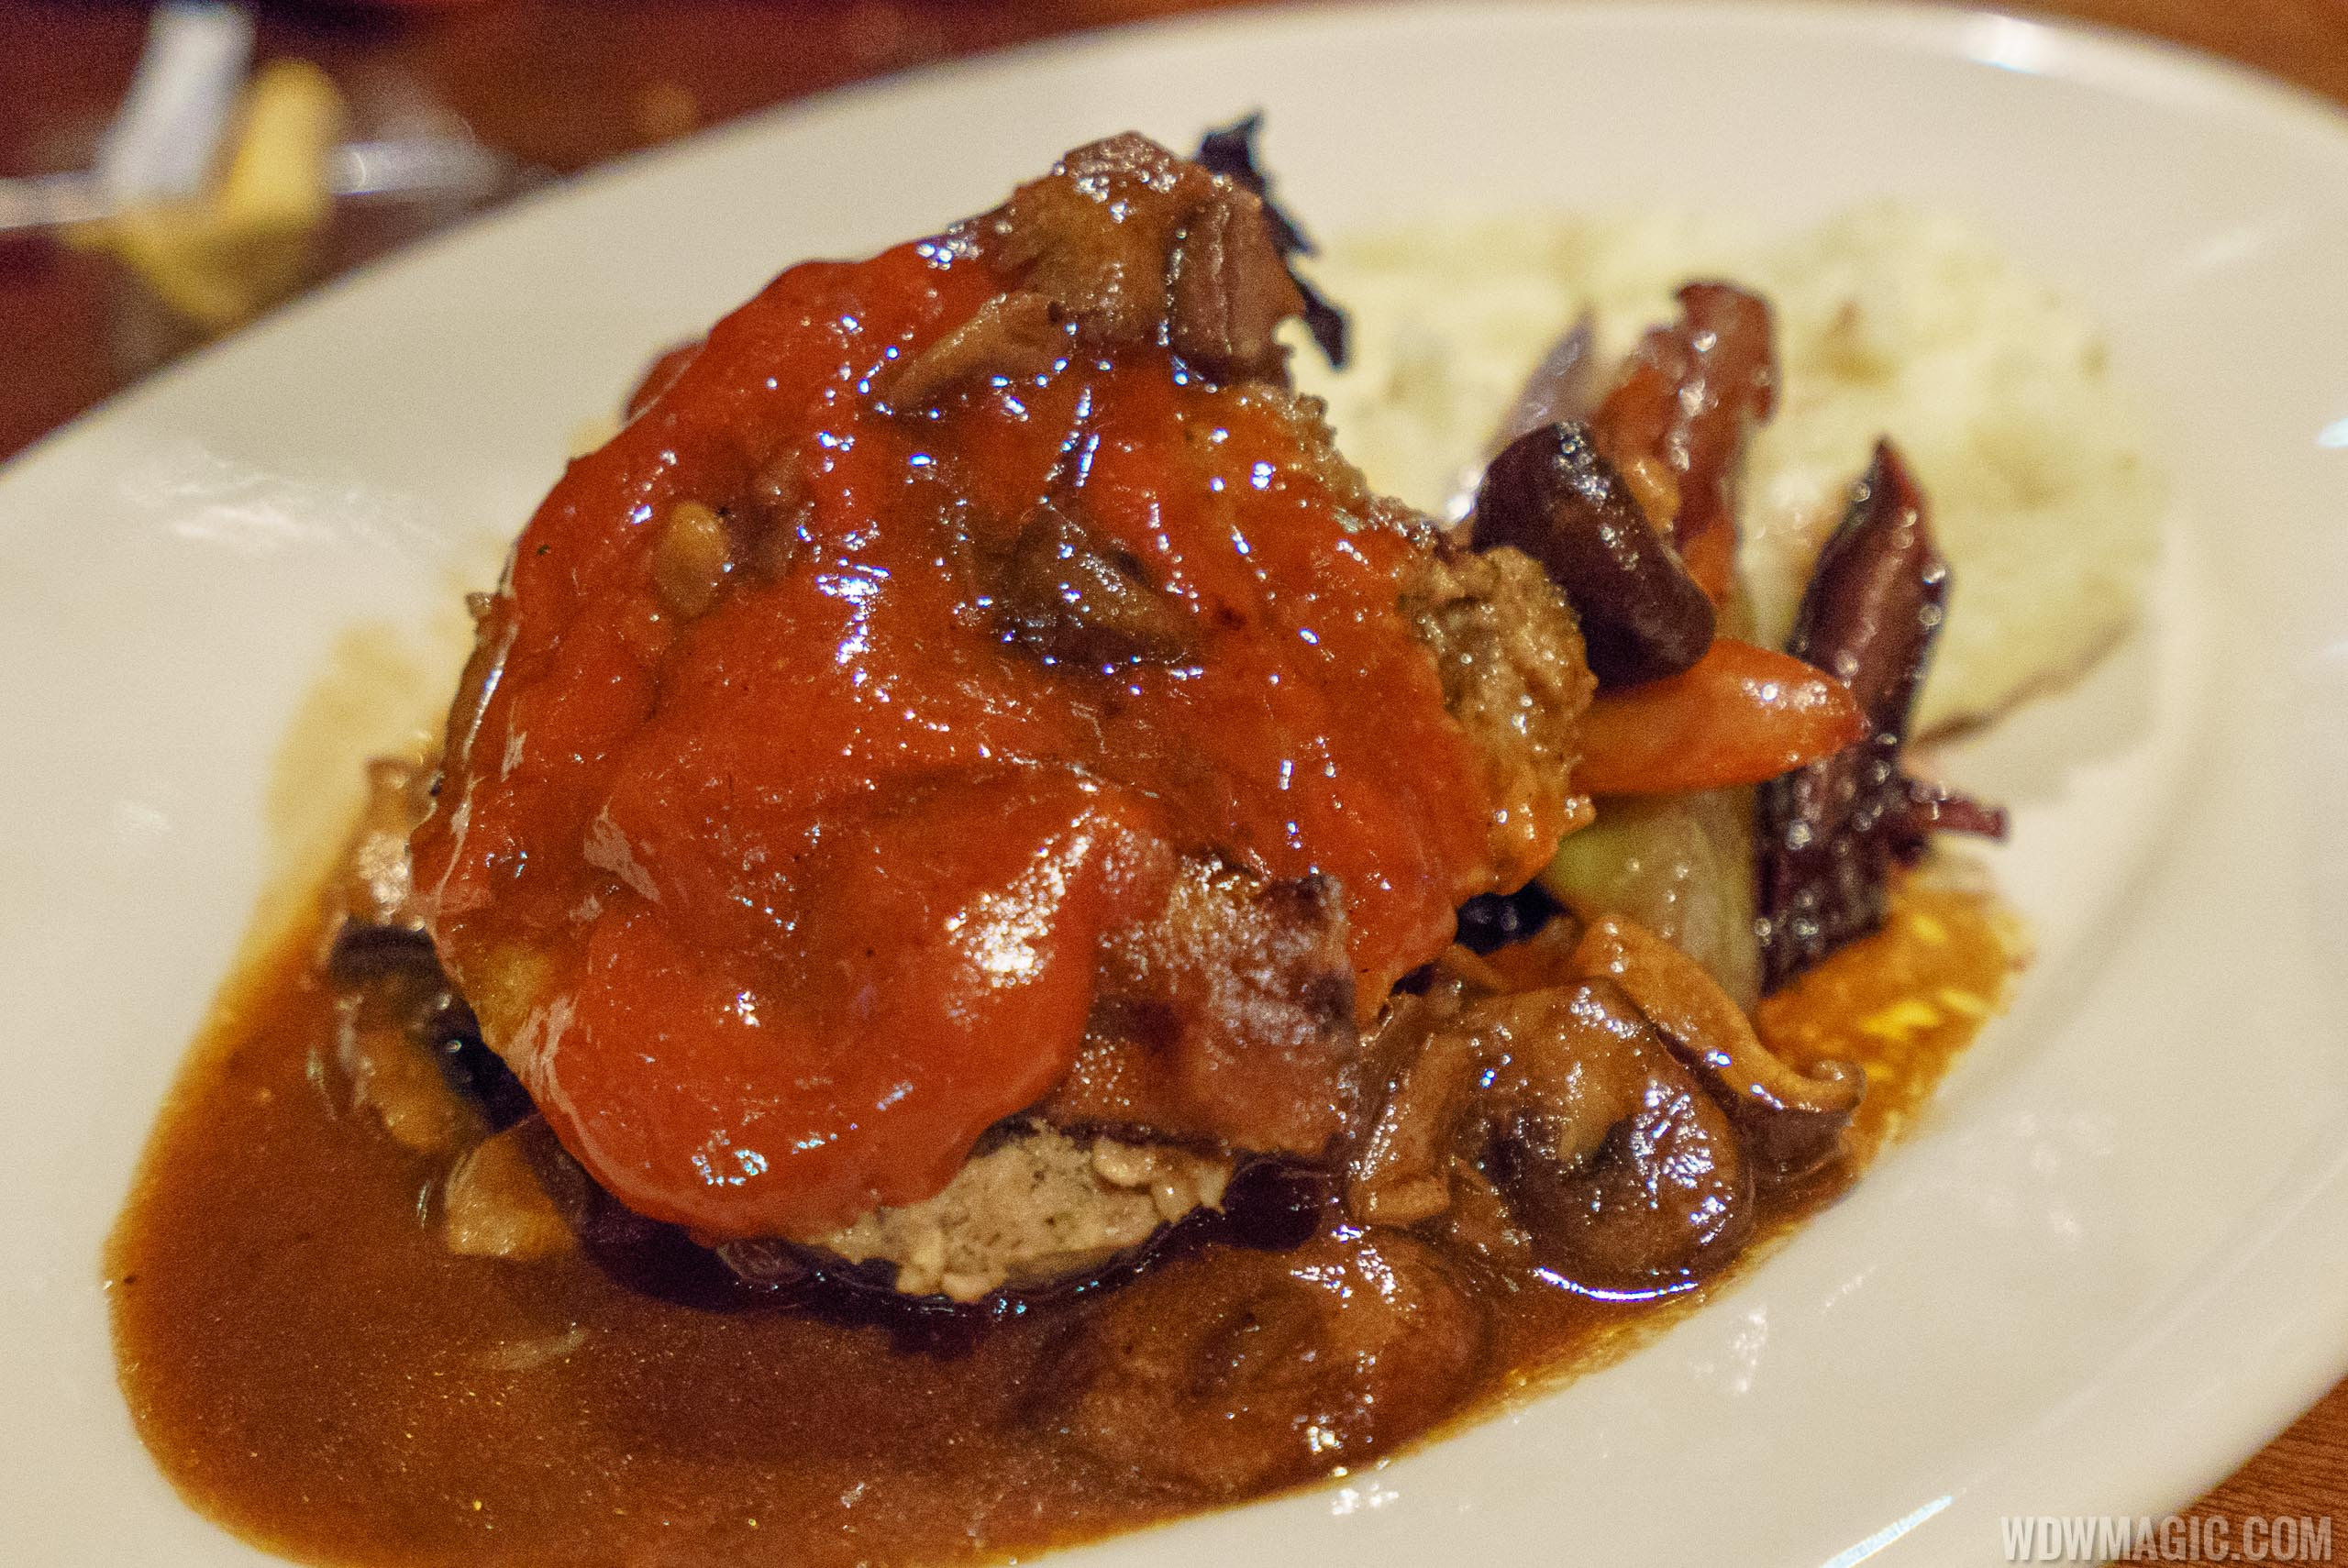 The Edison - Old Fashioned Meatloaf and Gravy